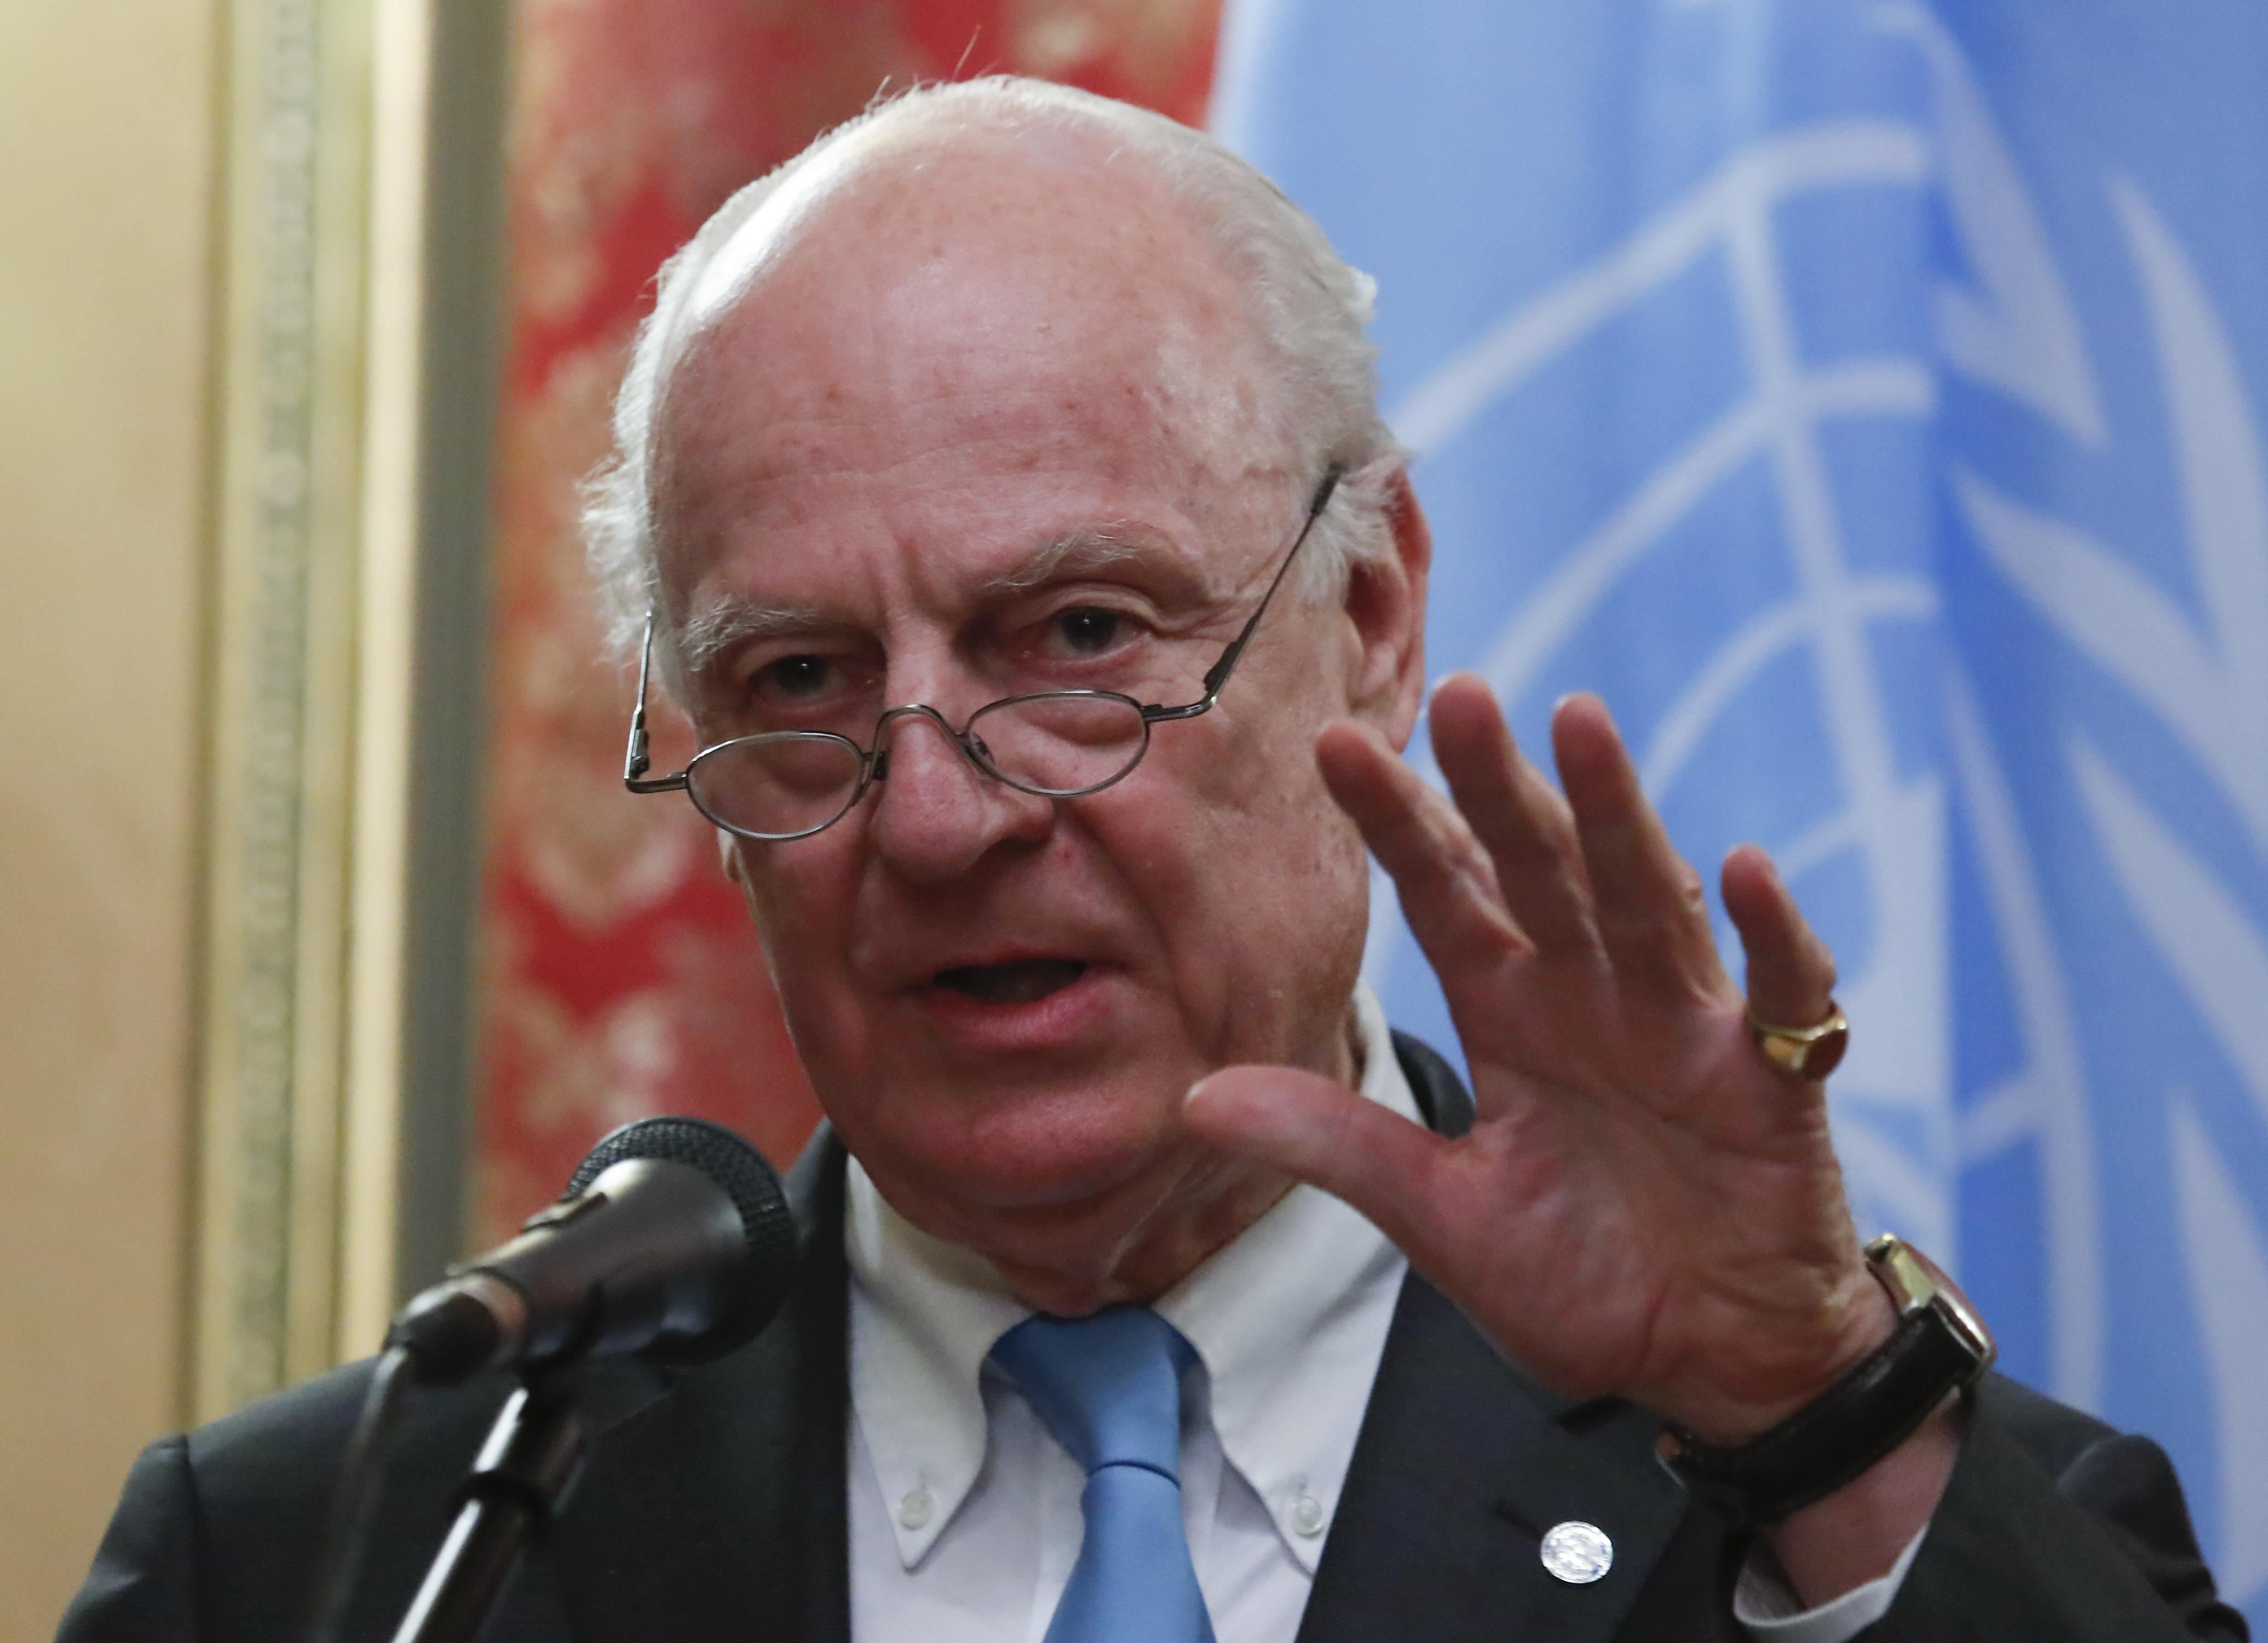 U.N. Syria envoy Staffan de Mistura speaks during a joint news conference with Russian Foreign Minister Sergei Lavrov following their meeting in Moscow, Russia April 20, 2018. Maxim Shemetov